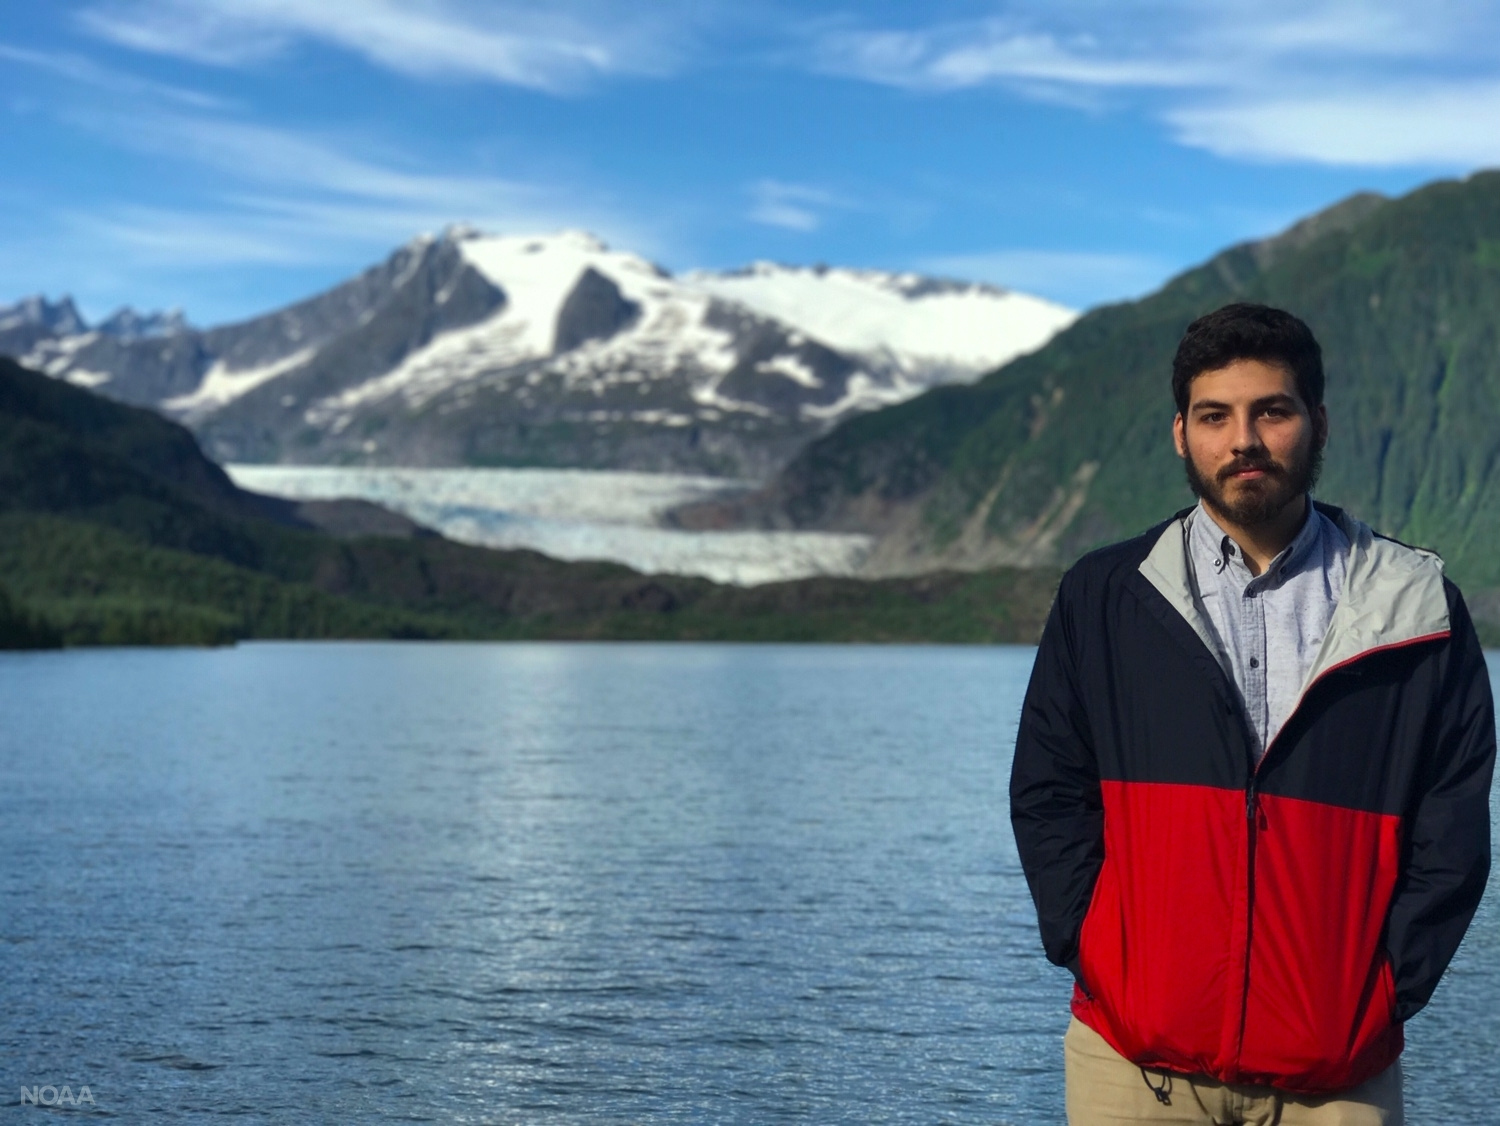 Willem Klajbor stands in front of Mendenhall Glacier in Juneau, Alaska. Will spent time working in the Coastal Ecology Fisheries Lab at the University of Alaska, Fairbanks, during his Hollings scholar experience.